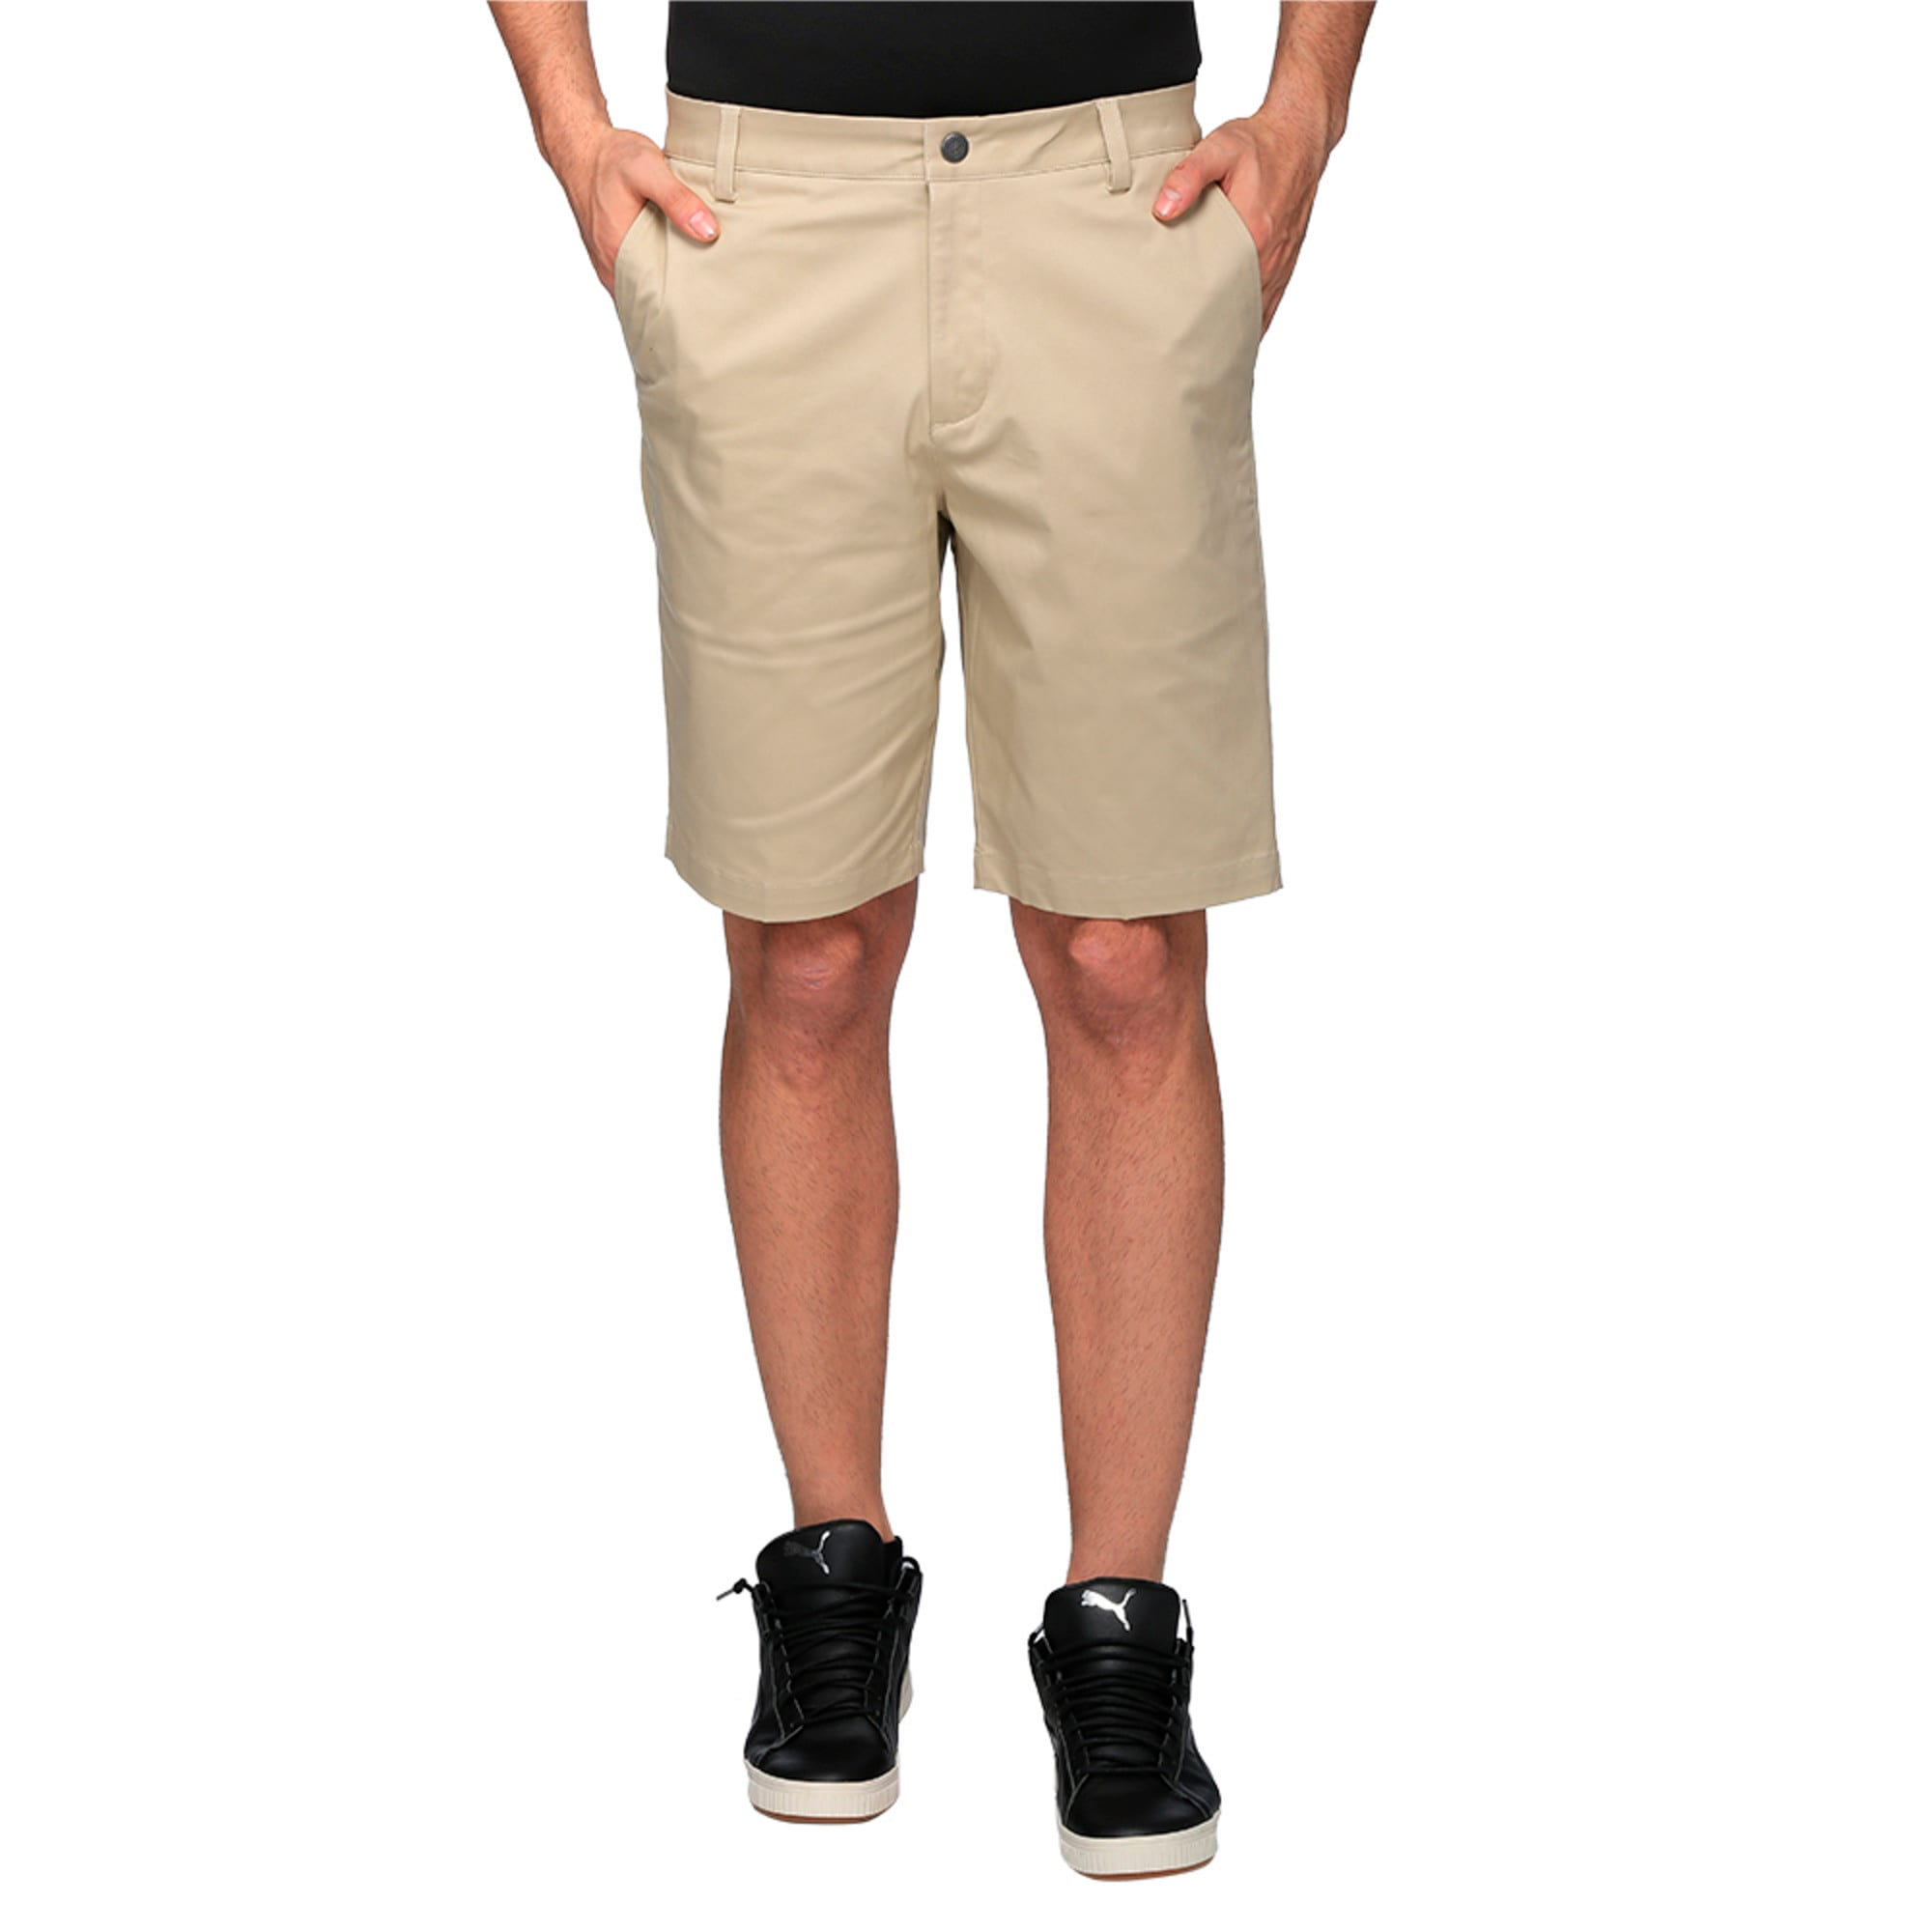 Thumbnail 2 of Golf Men's Tailored Chino Shorts, White Pepper, medium-IND